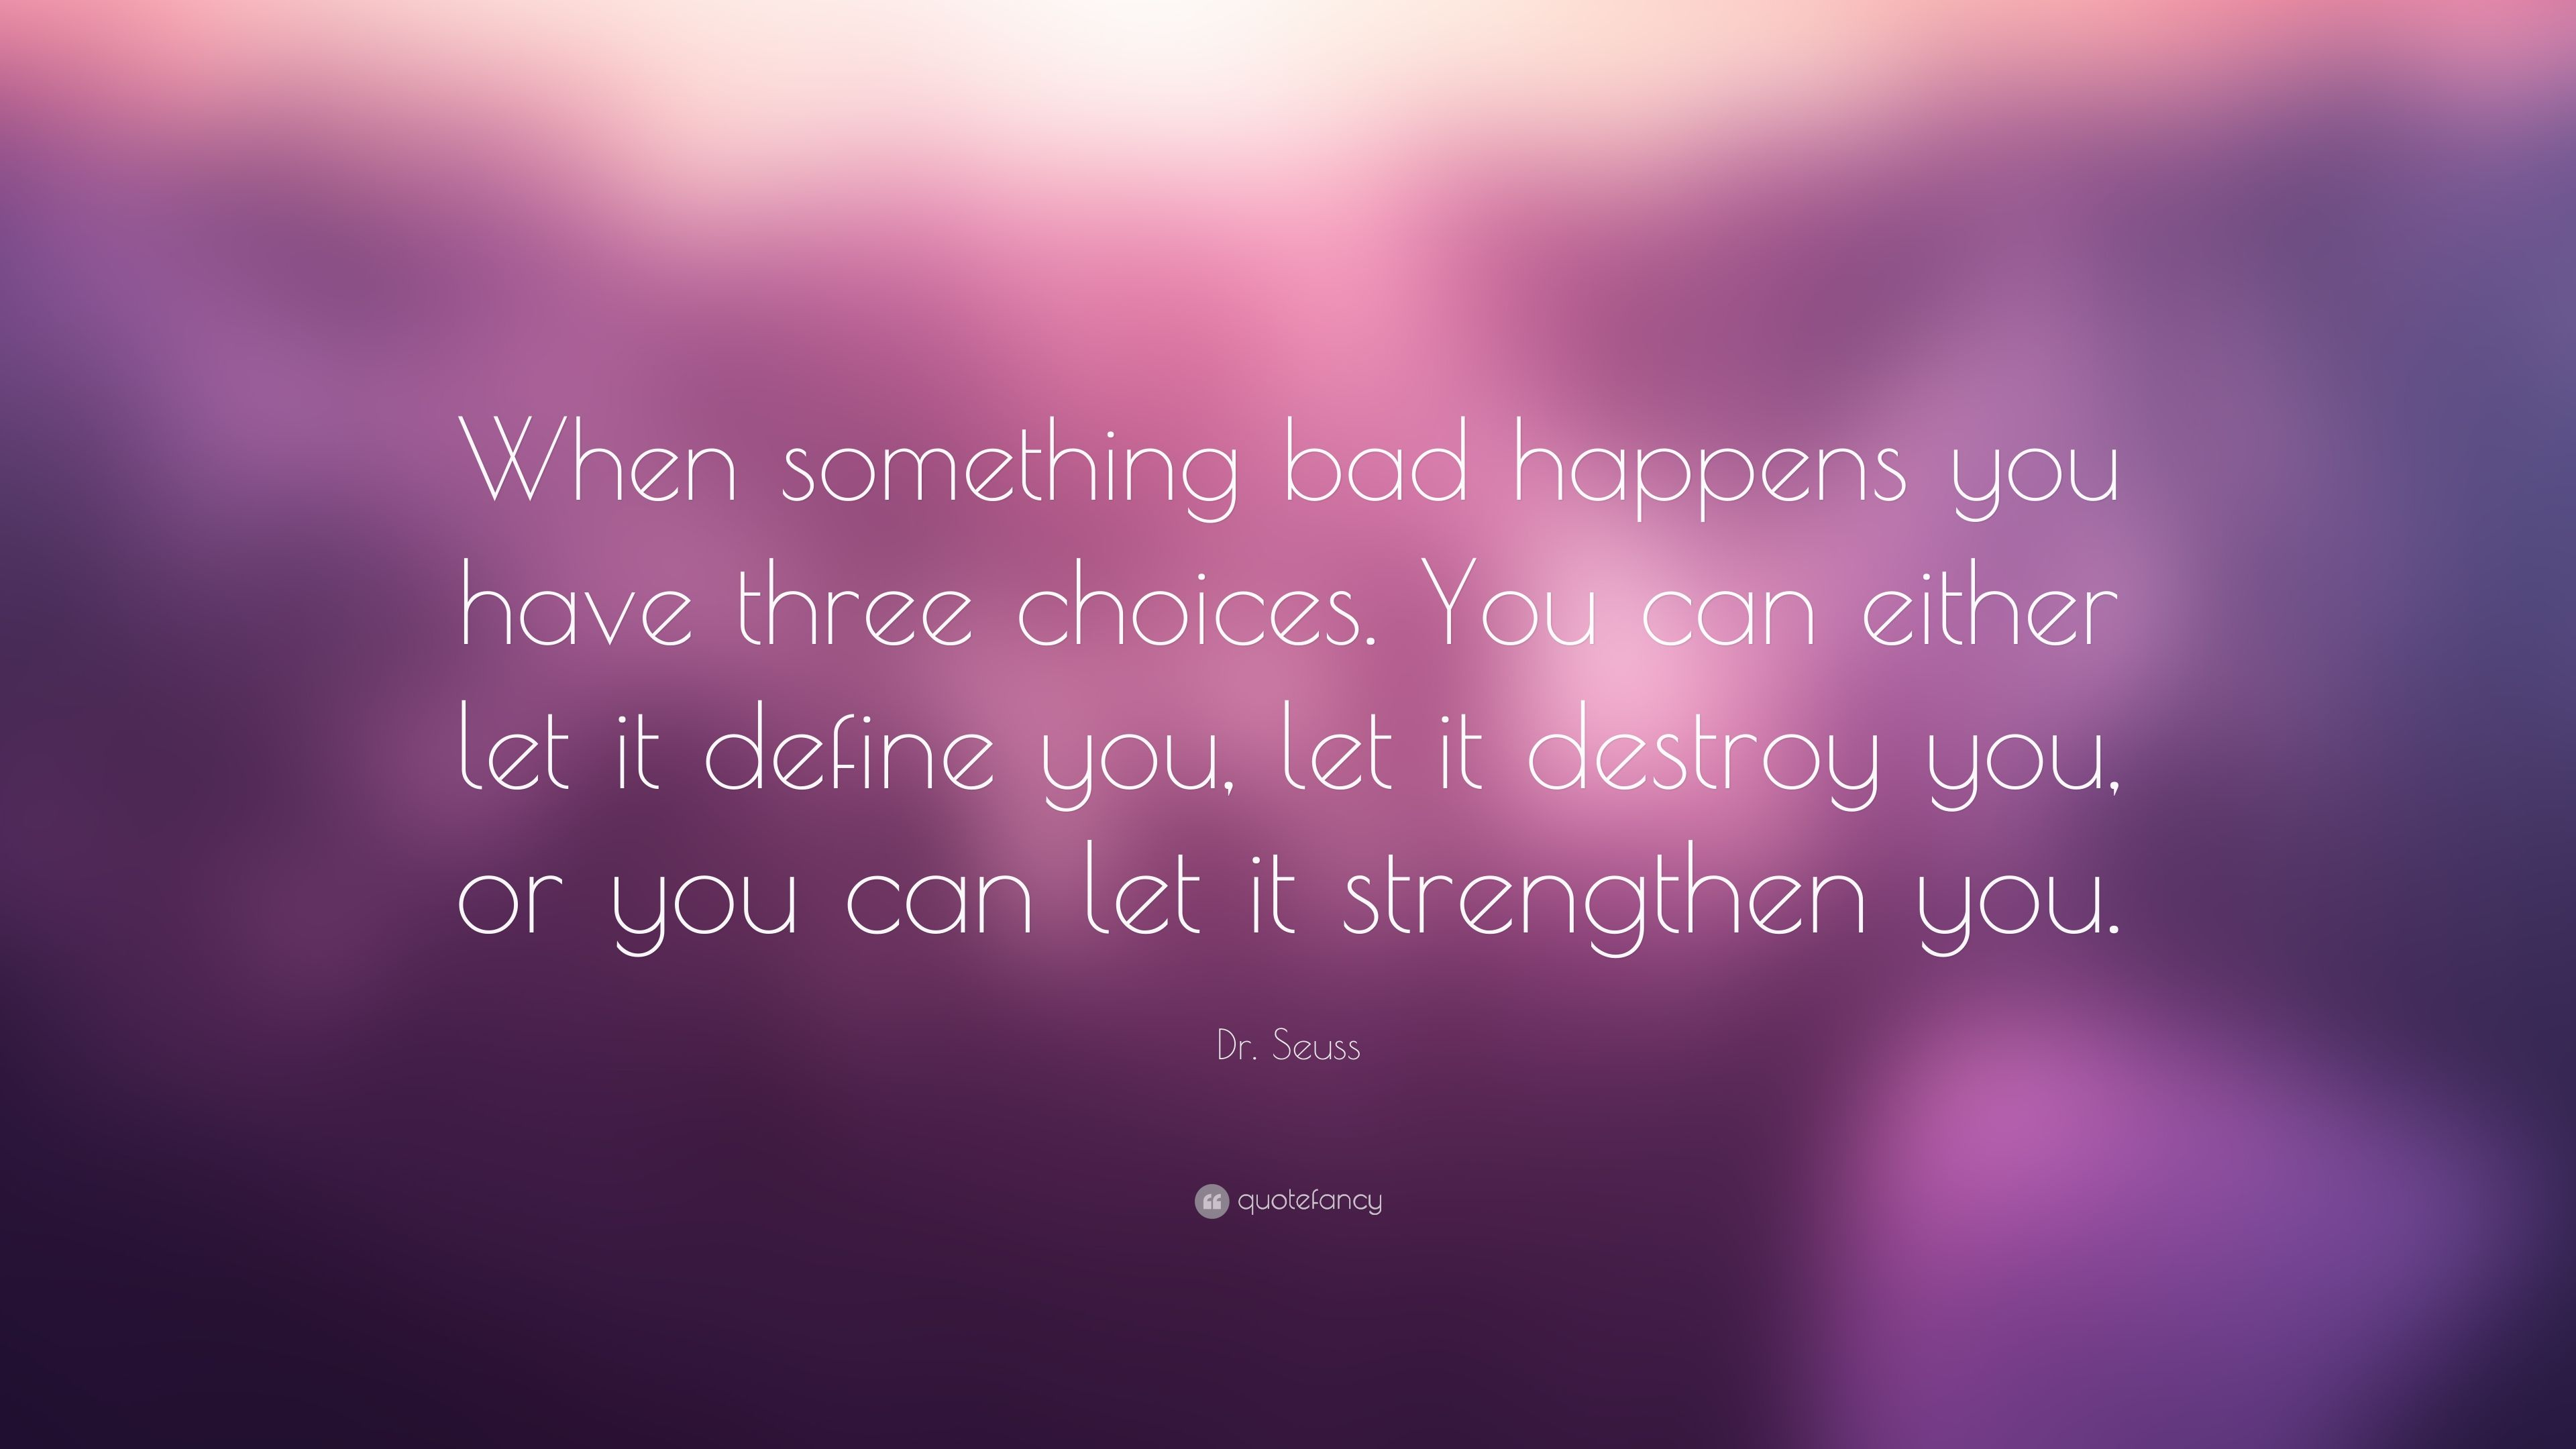 Socrates Wallpaper Quotes Dr Seuss Quote When Something Bad Happens You Have